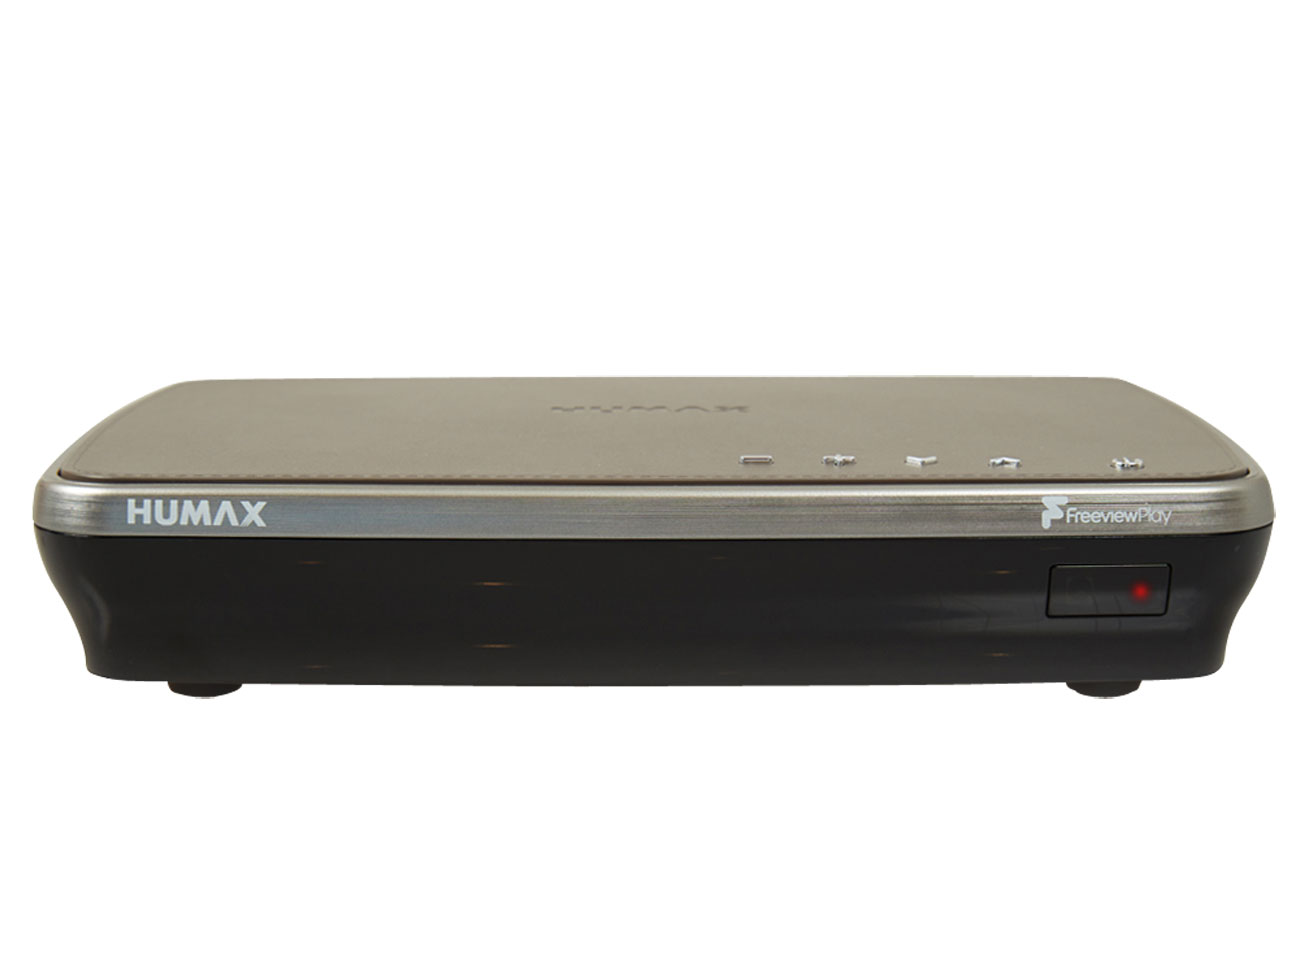 Humax FVP-4000T 1TB Freeview Play HD Digital TV Recorder